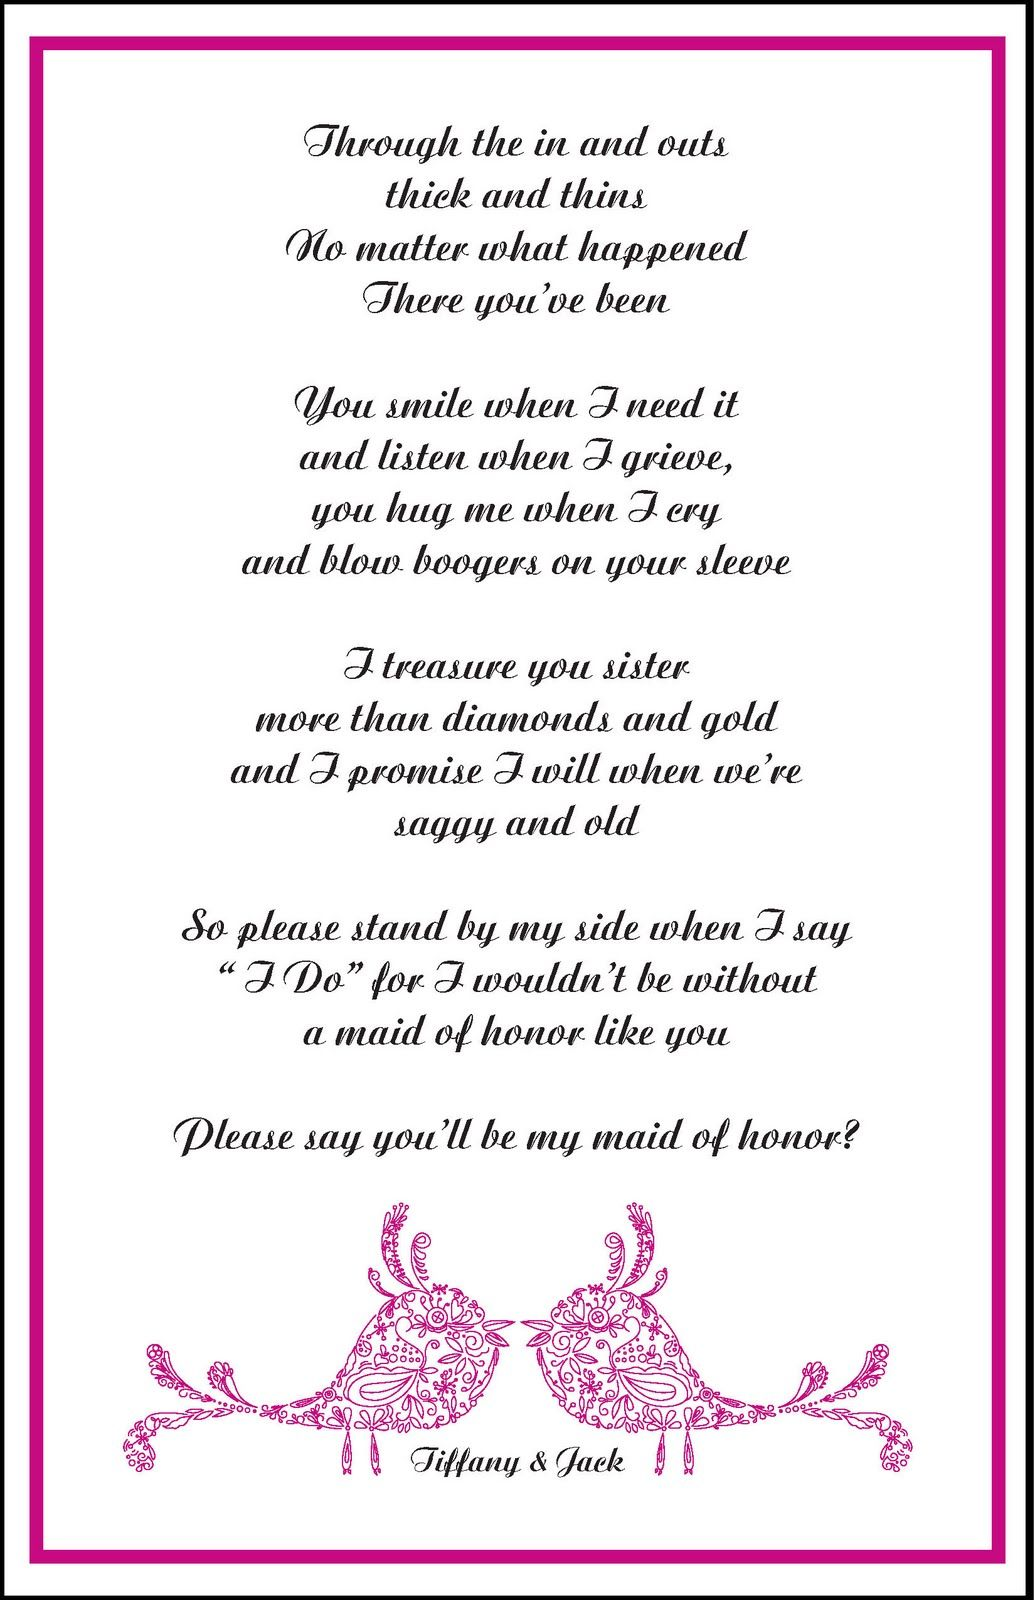 Funny Bridesmaid Poems To The Bride : funny, bridesmaid, poems, bride, Designs, Alaina, Bridesmaid, Poems,, Wedding, Letter